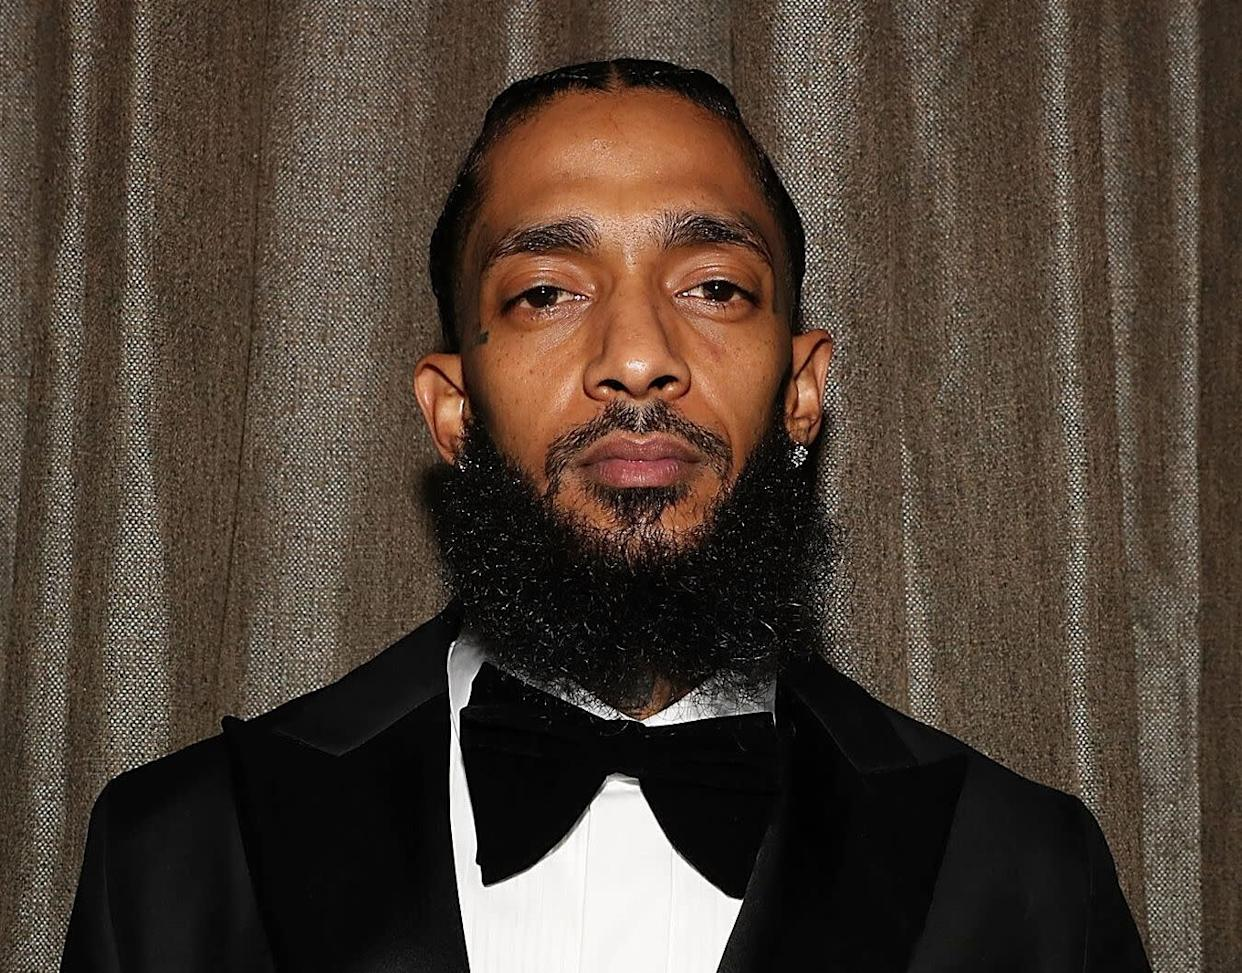 Grammy-nominated rapper Nipsey Hussle was shot and killed on March 31, 2019. He was 33.